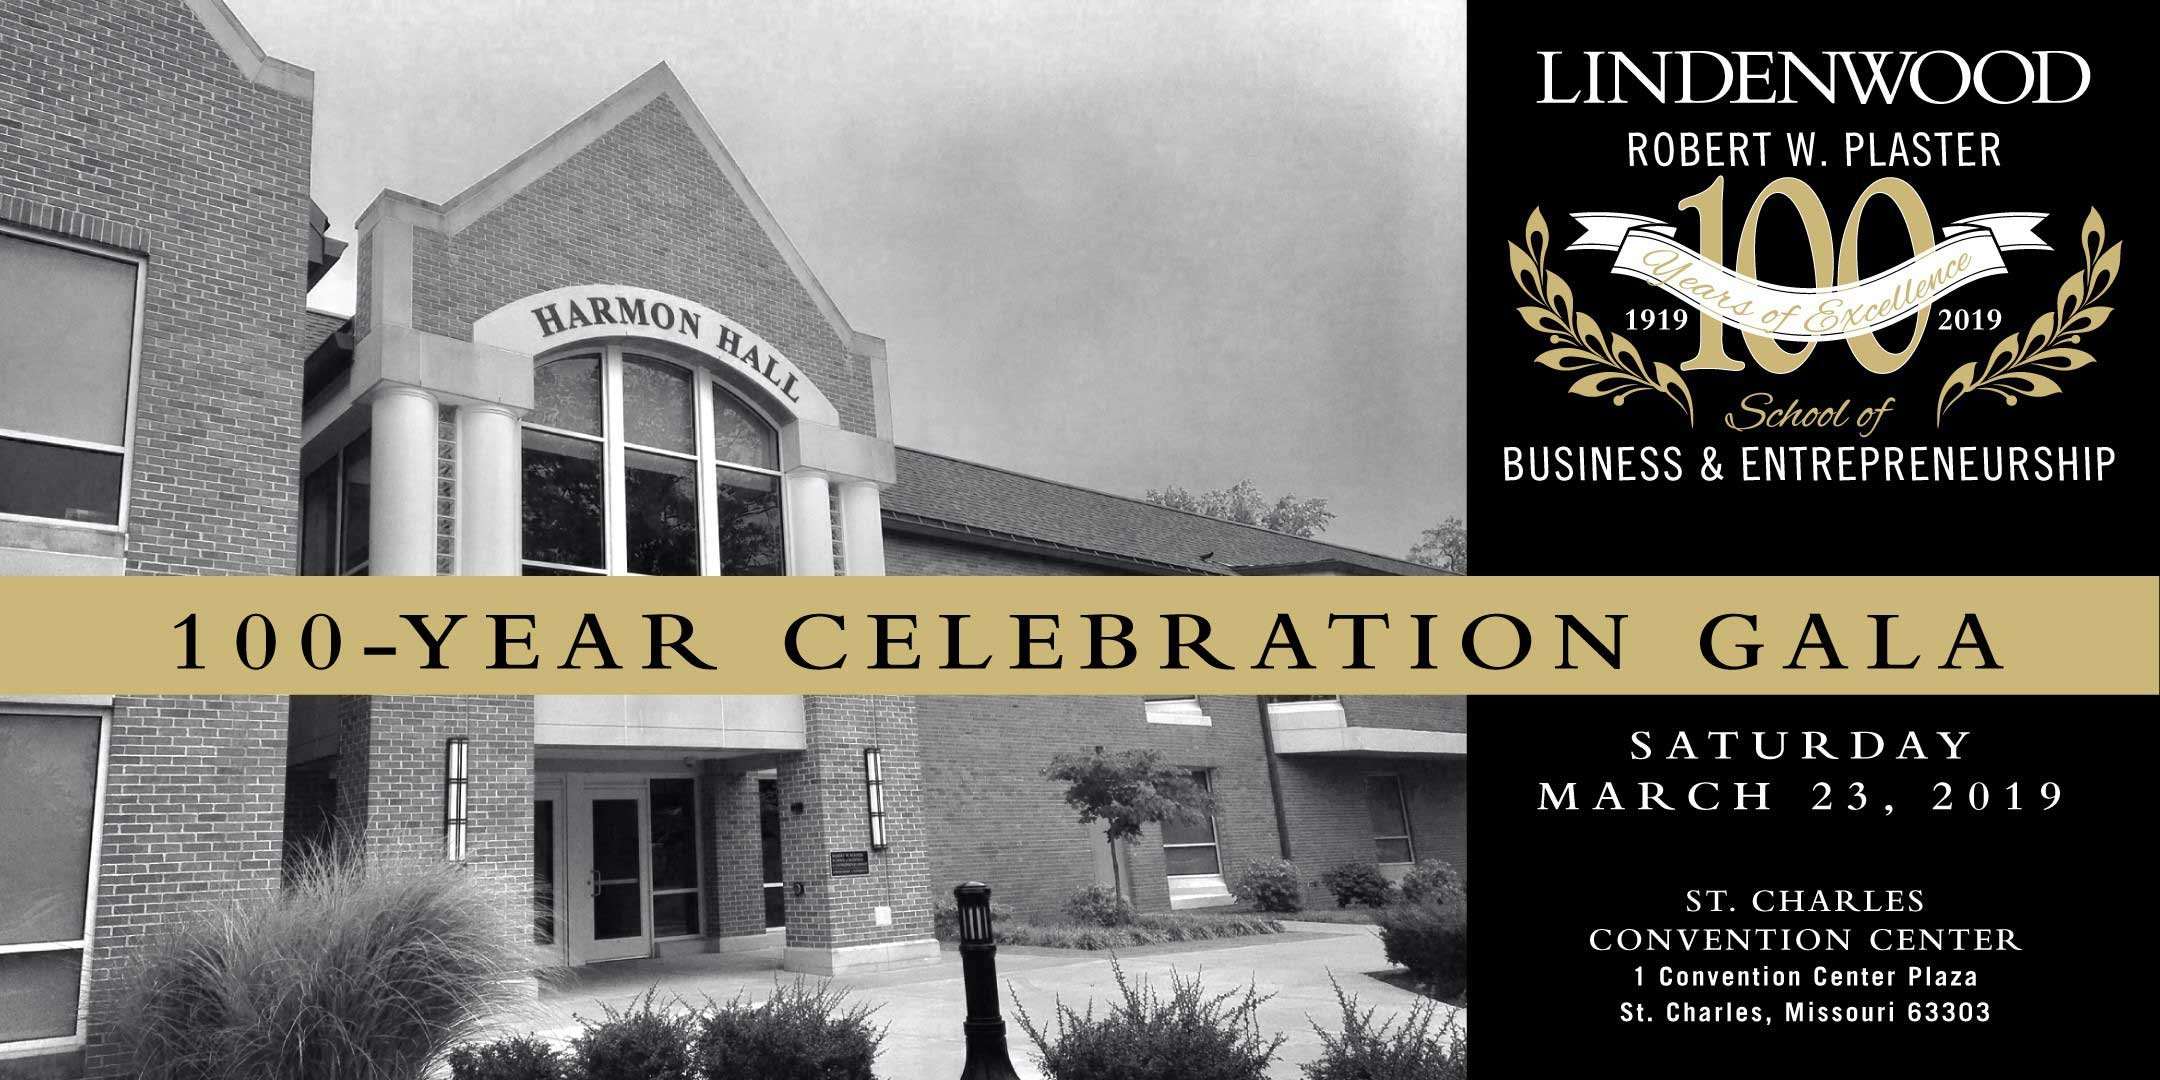 Save the Date - 100-Year Celebration - Saturday, March 23, 2019